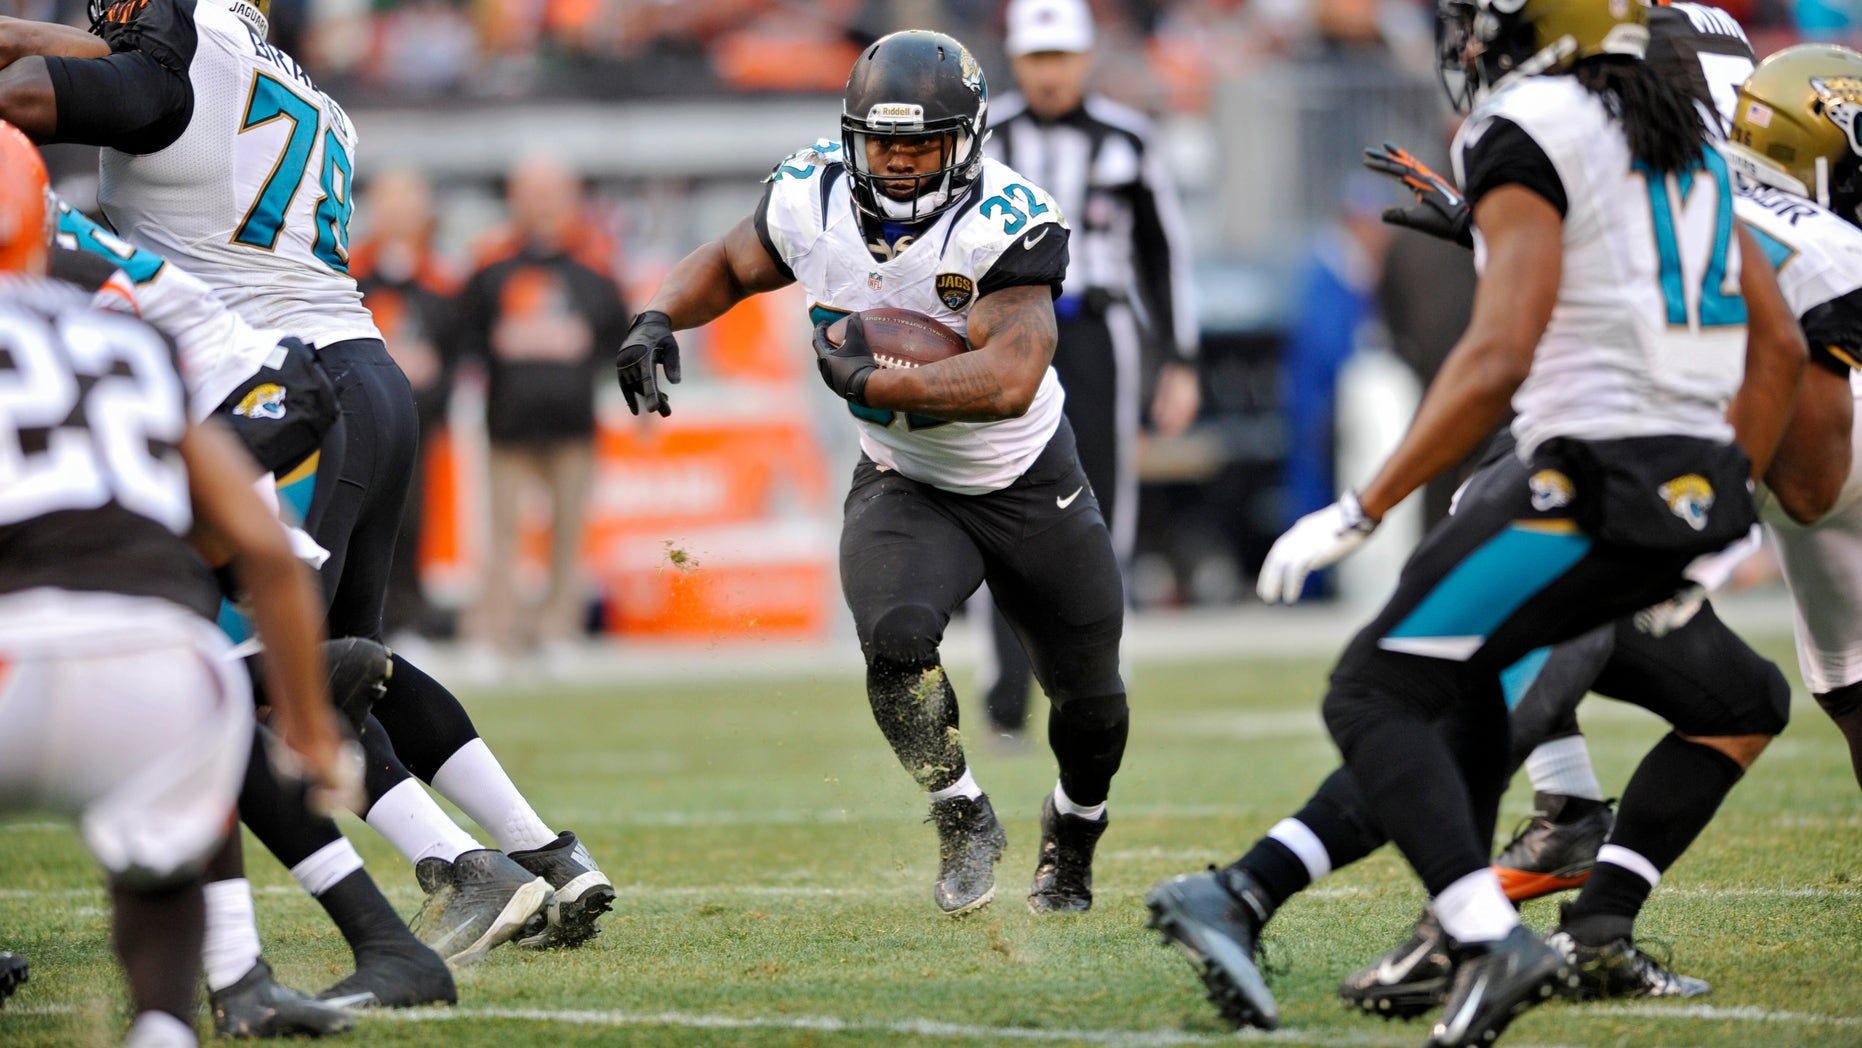 Jacksonville Jaguars running back Maurice Jones-Drew runs against the Cleveland Browns in the fourth quarter of an NFL football game on Sunday, Dec. 1, 2013, in Cleveland. (AP Photo/David Richard)